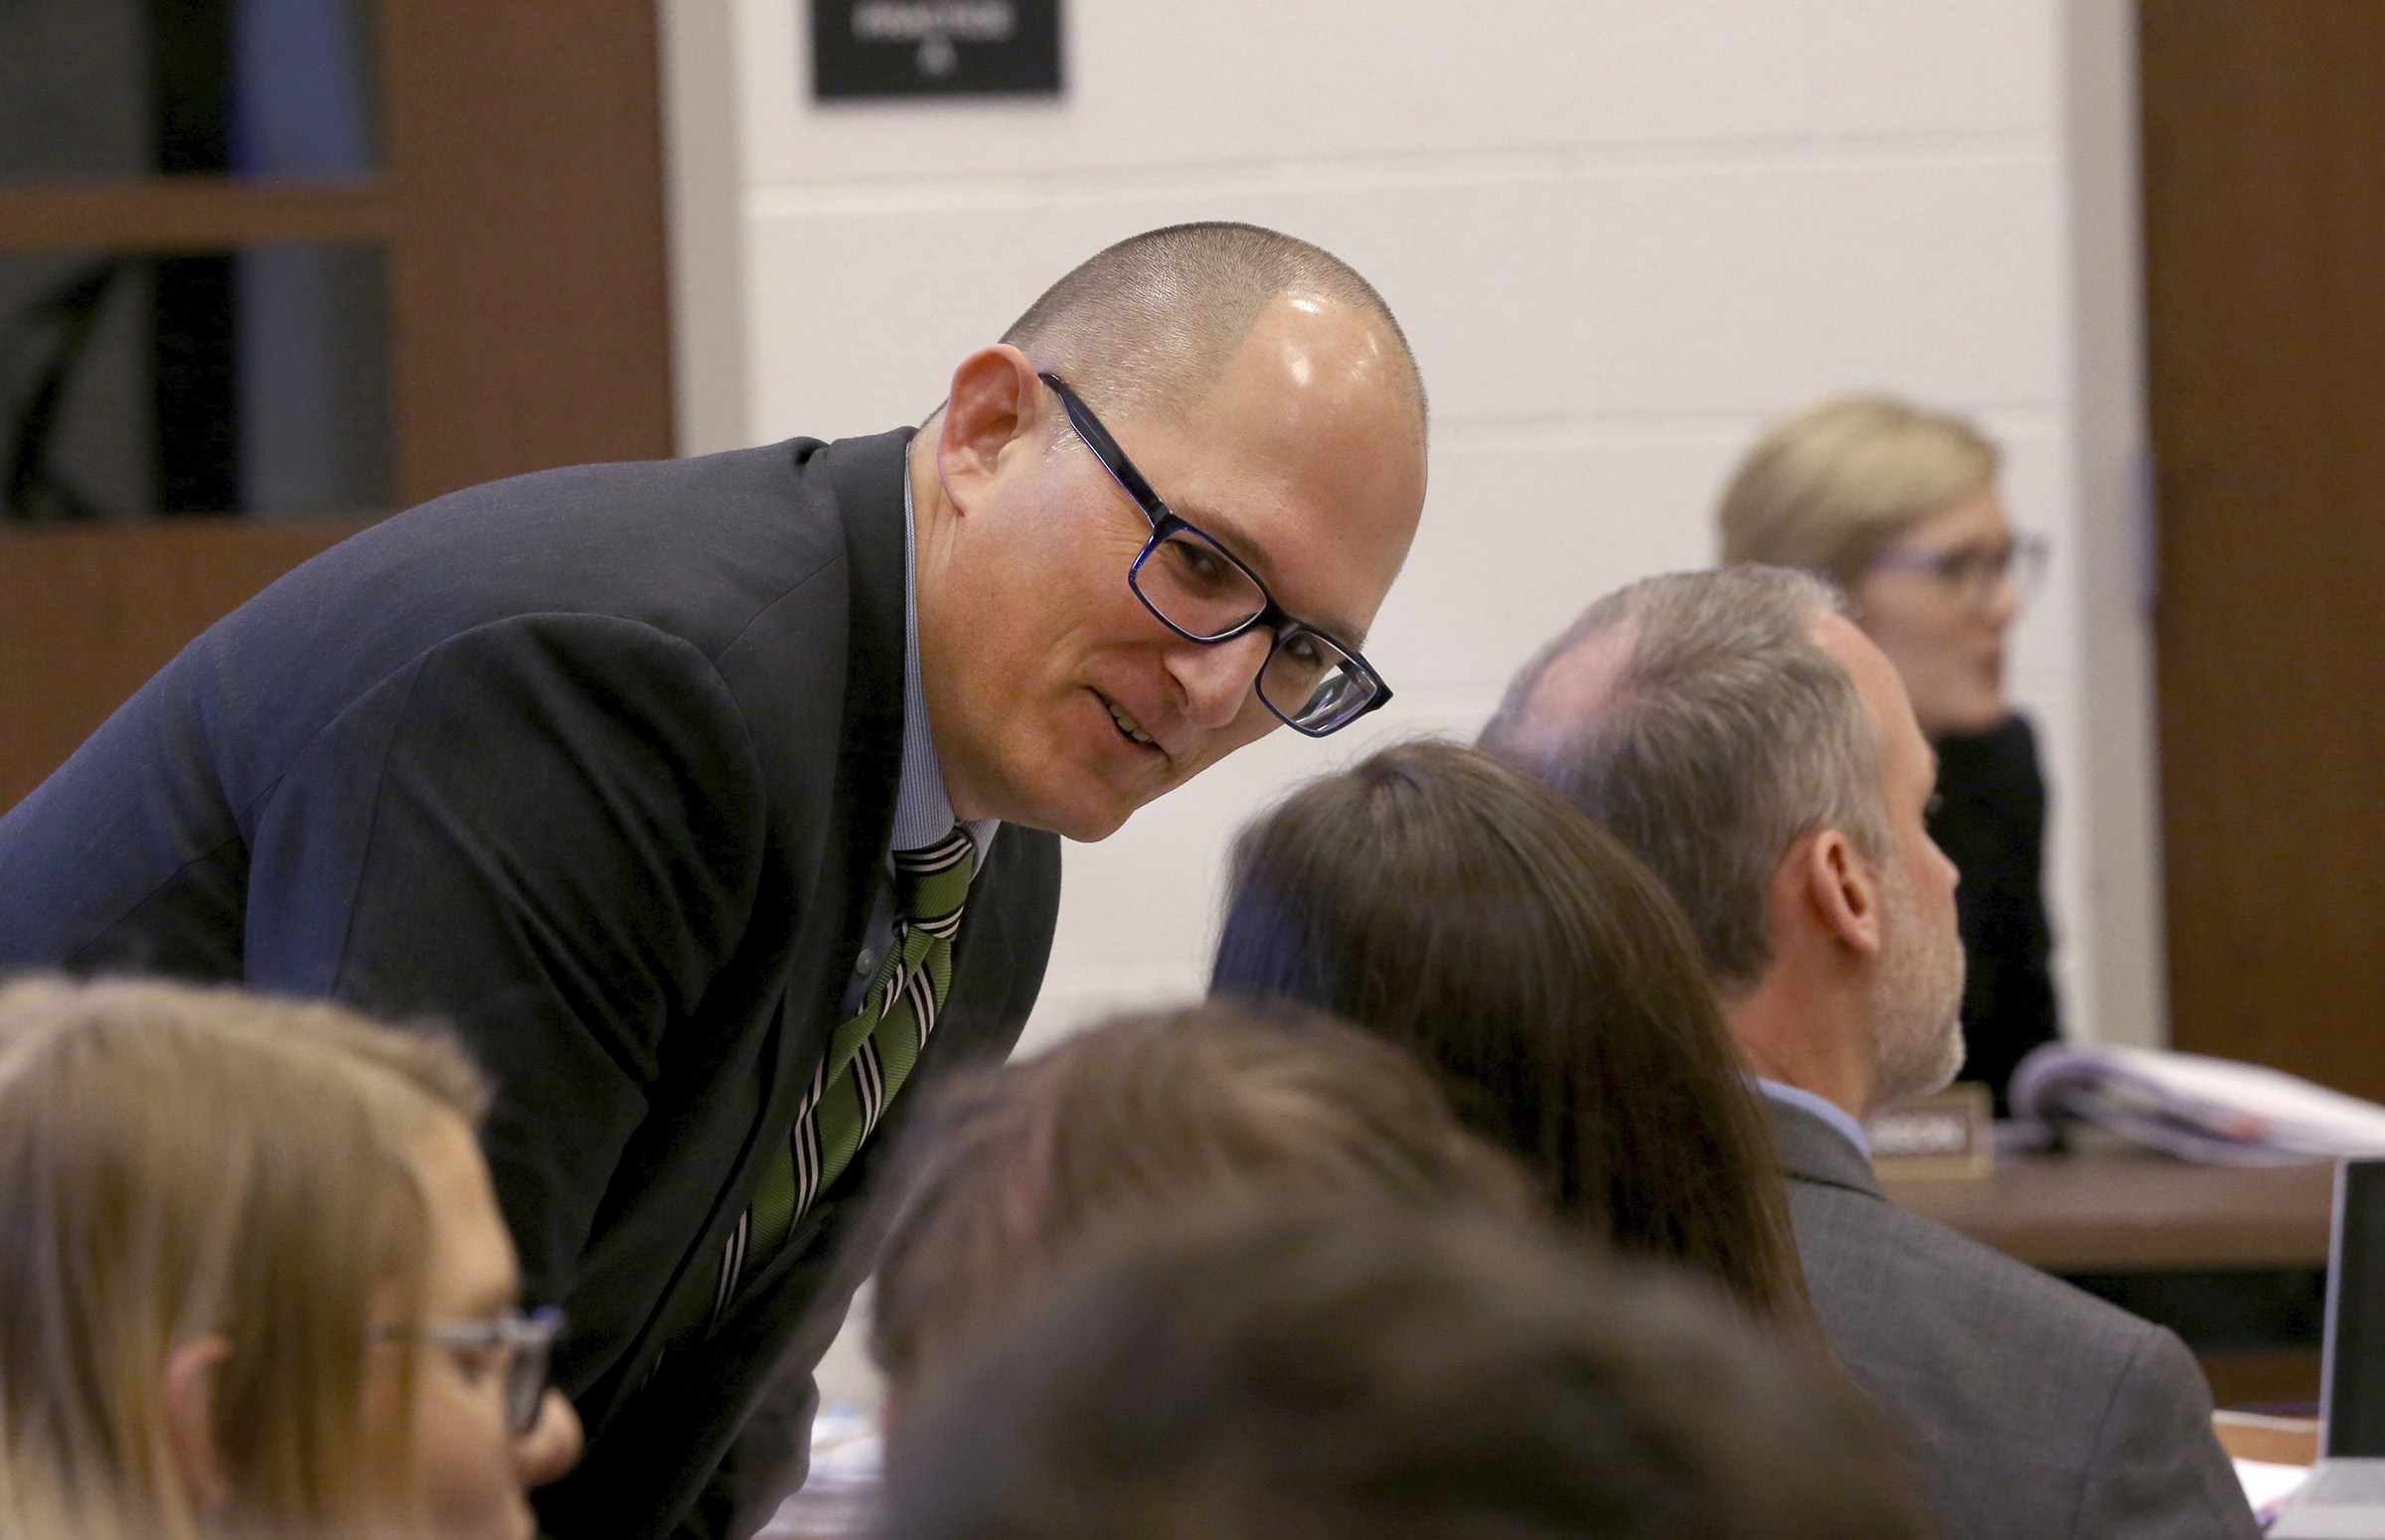 High school teacher Peter Vlaming chats at a West Point School Board hearing in West Point, Virginia on Dec. 6, 2018.